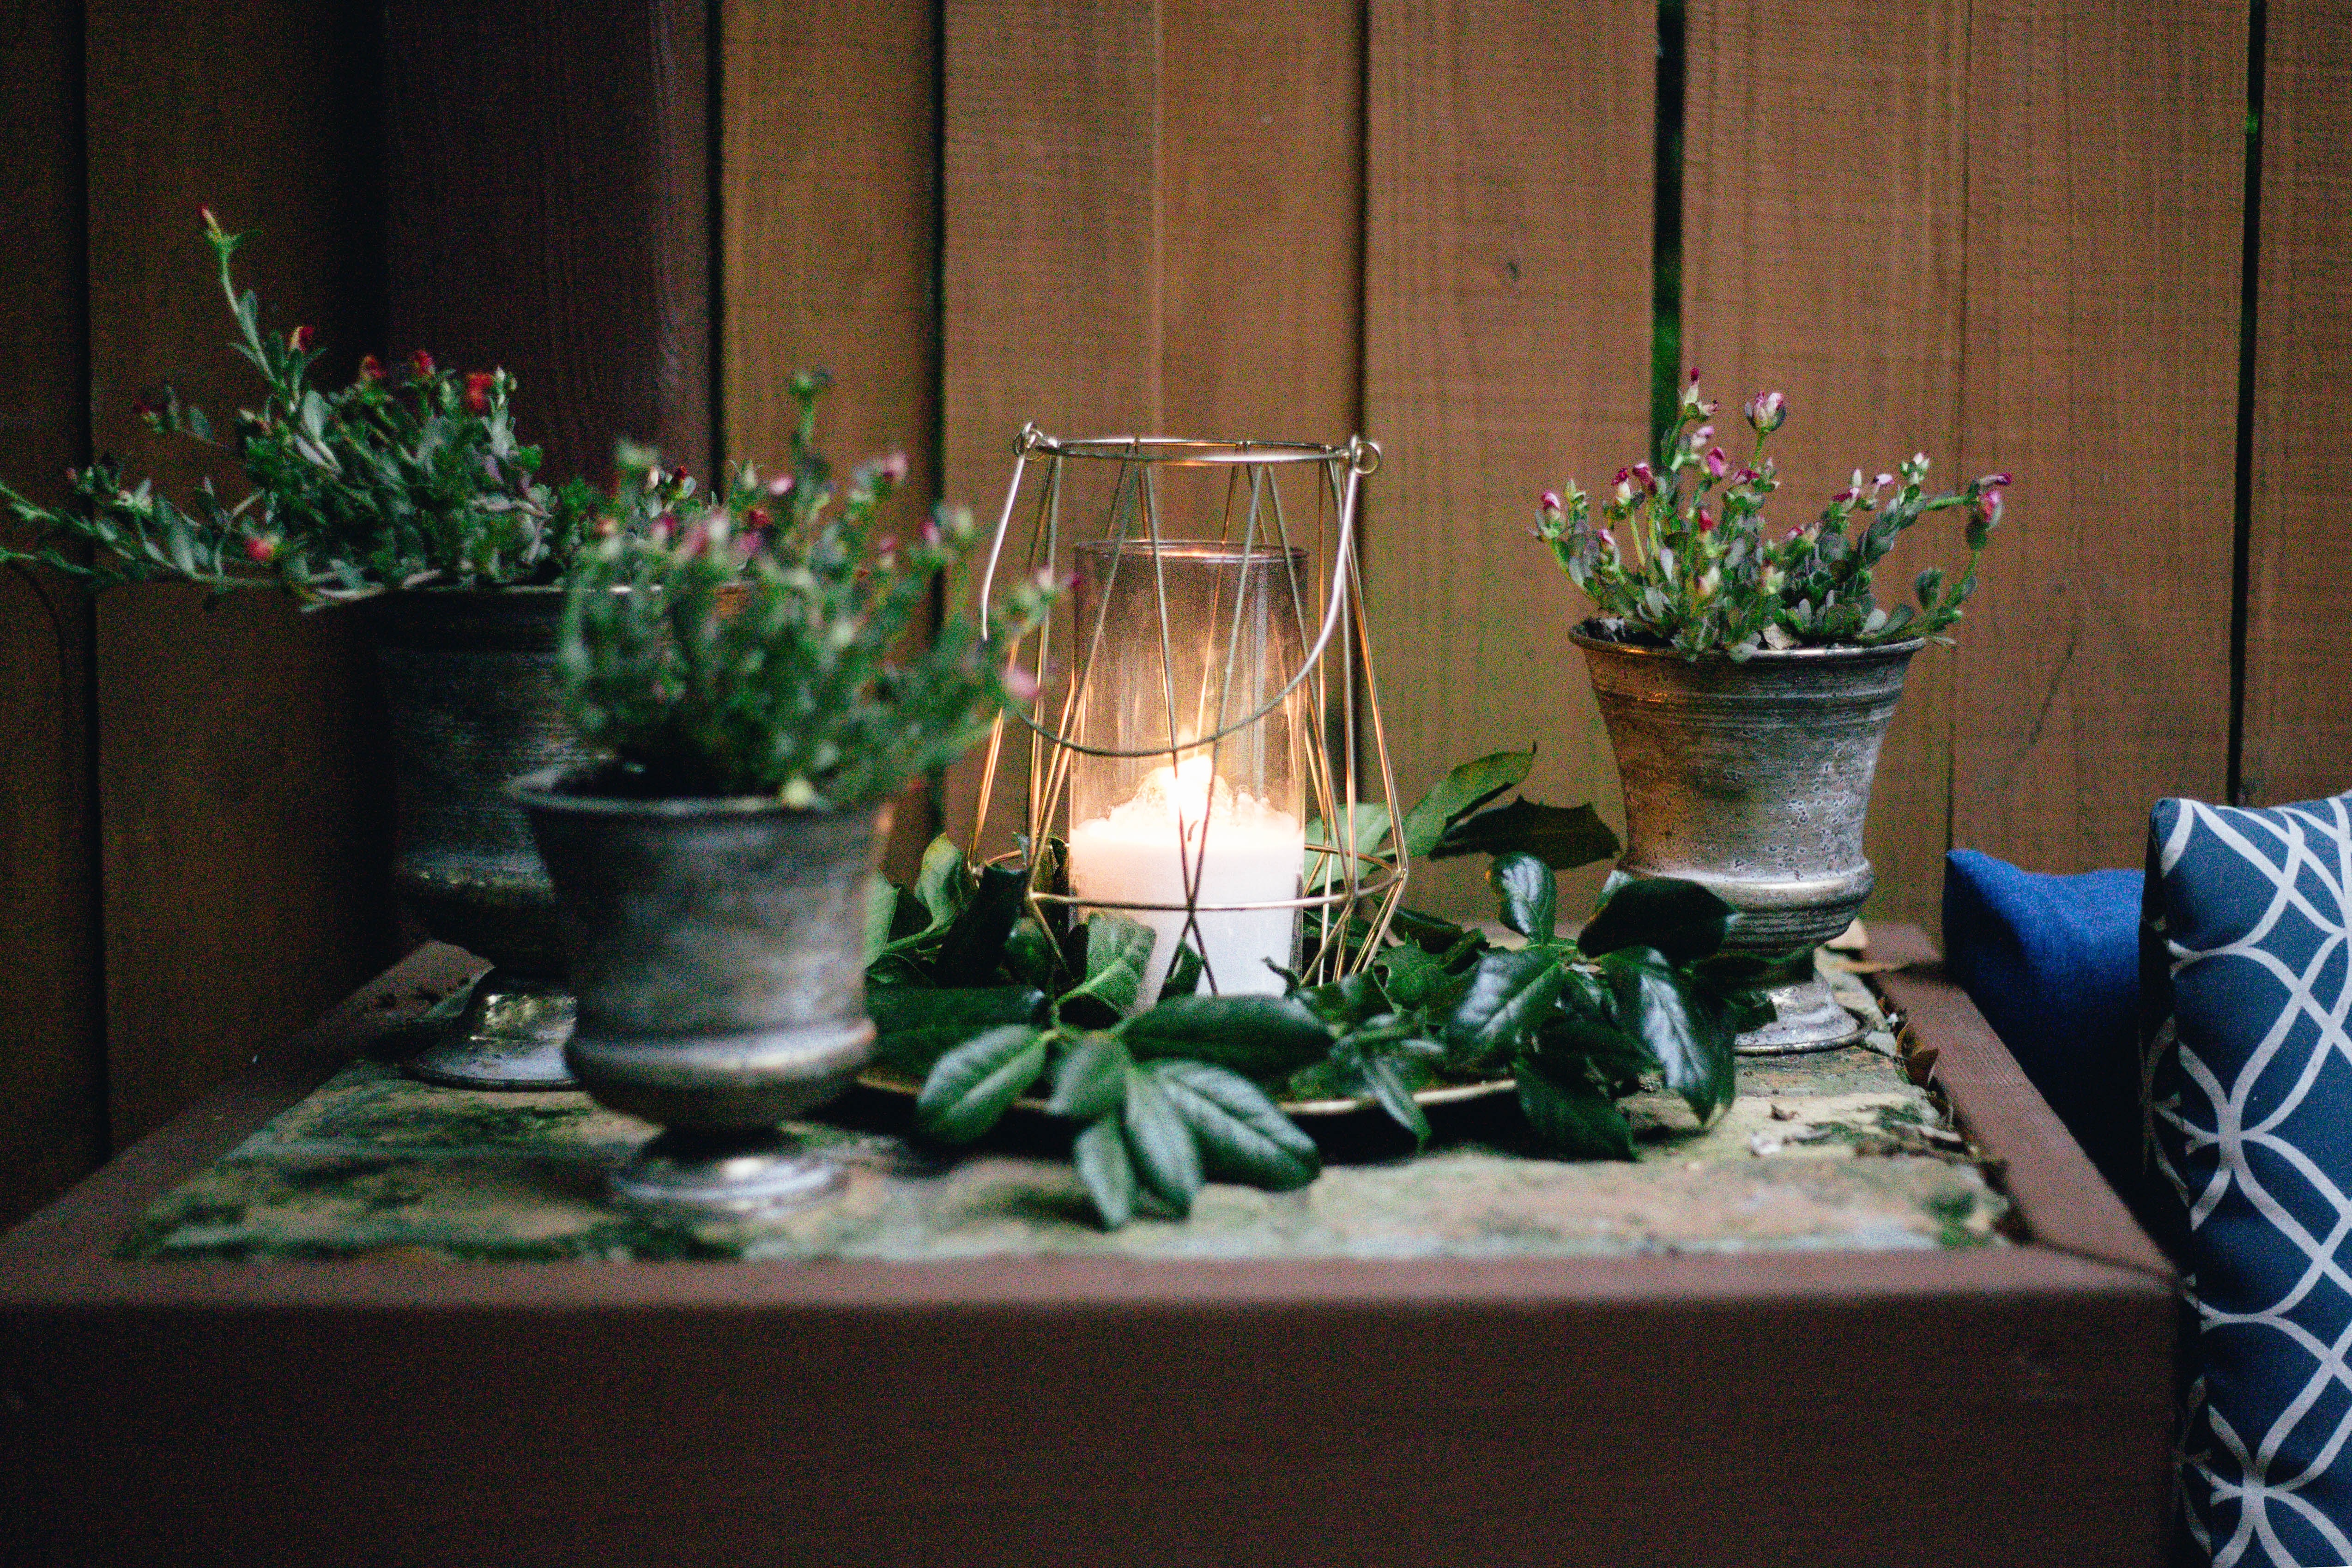 lighted candle on table beside pots